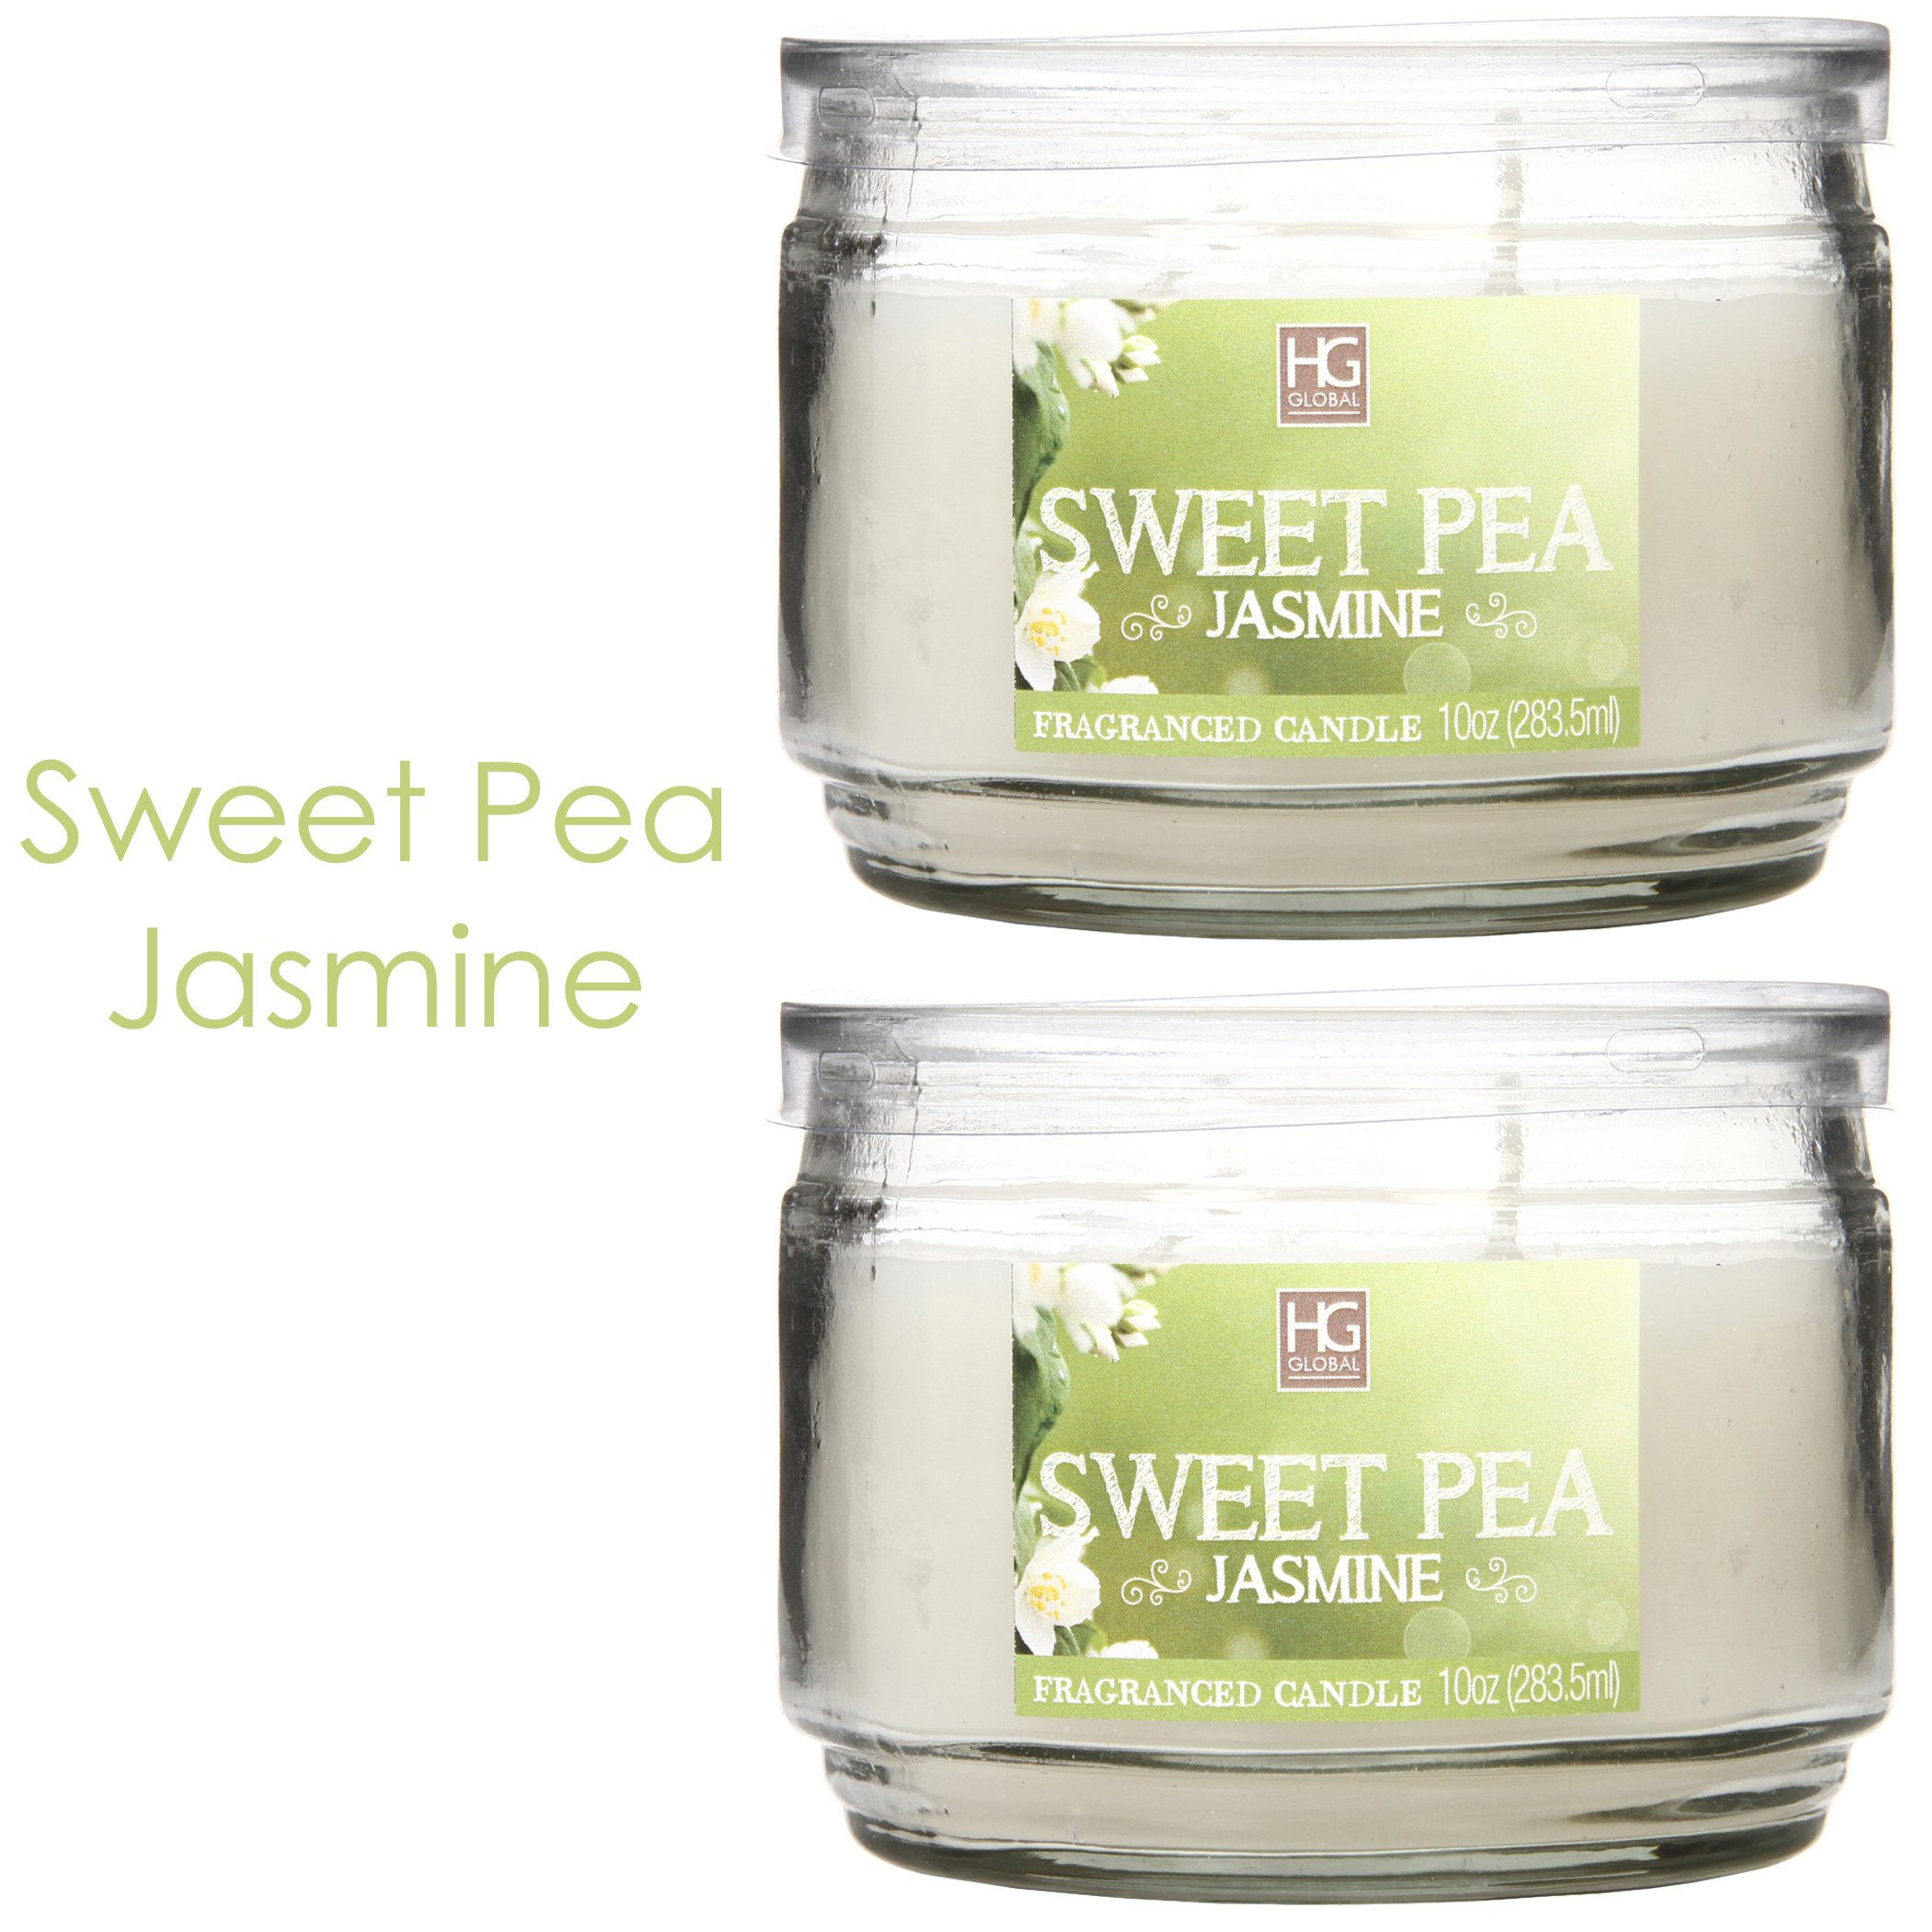 Hosley Set of 2 Sweet Pea Jasmine 2 Wick 10 Oz wax Jar Candle, Hand Poured Wax Blend Infused with Essential Oils Ideal GIFT for Party, Weddings, Spa, Reiki, Meditation, Bathroom O9